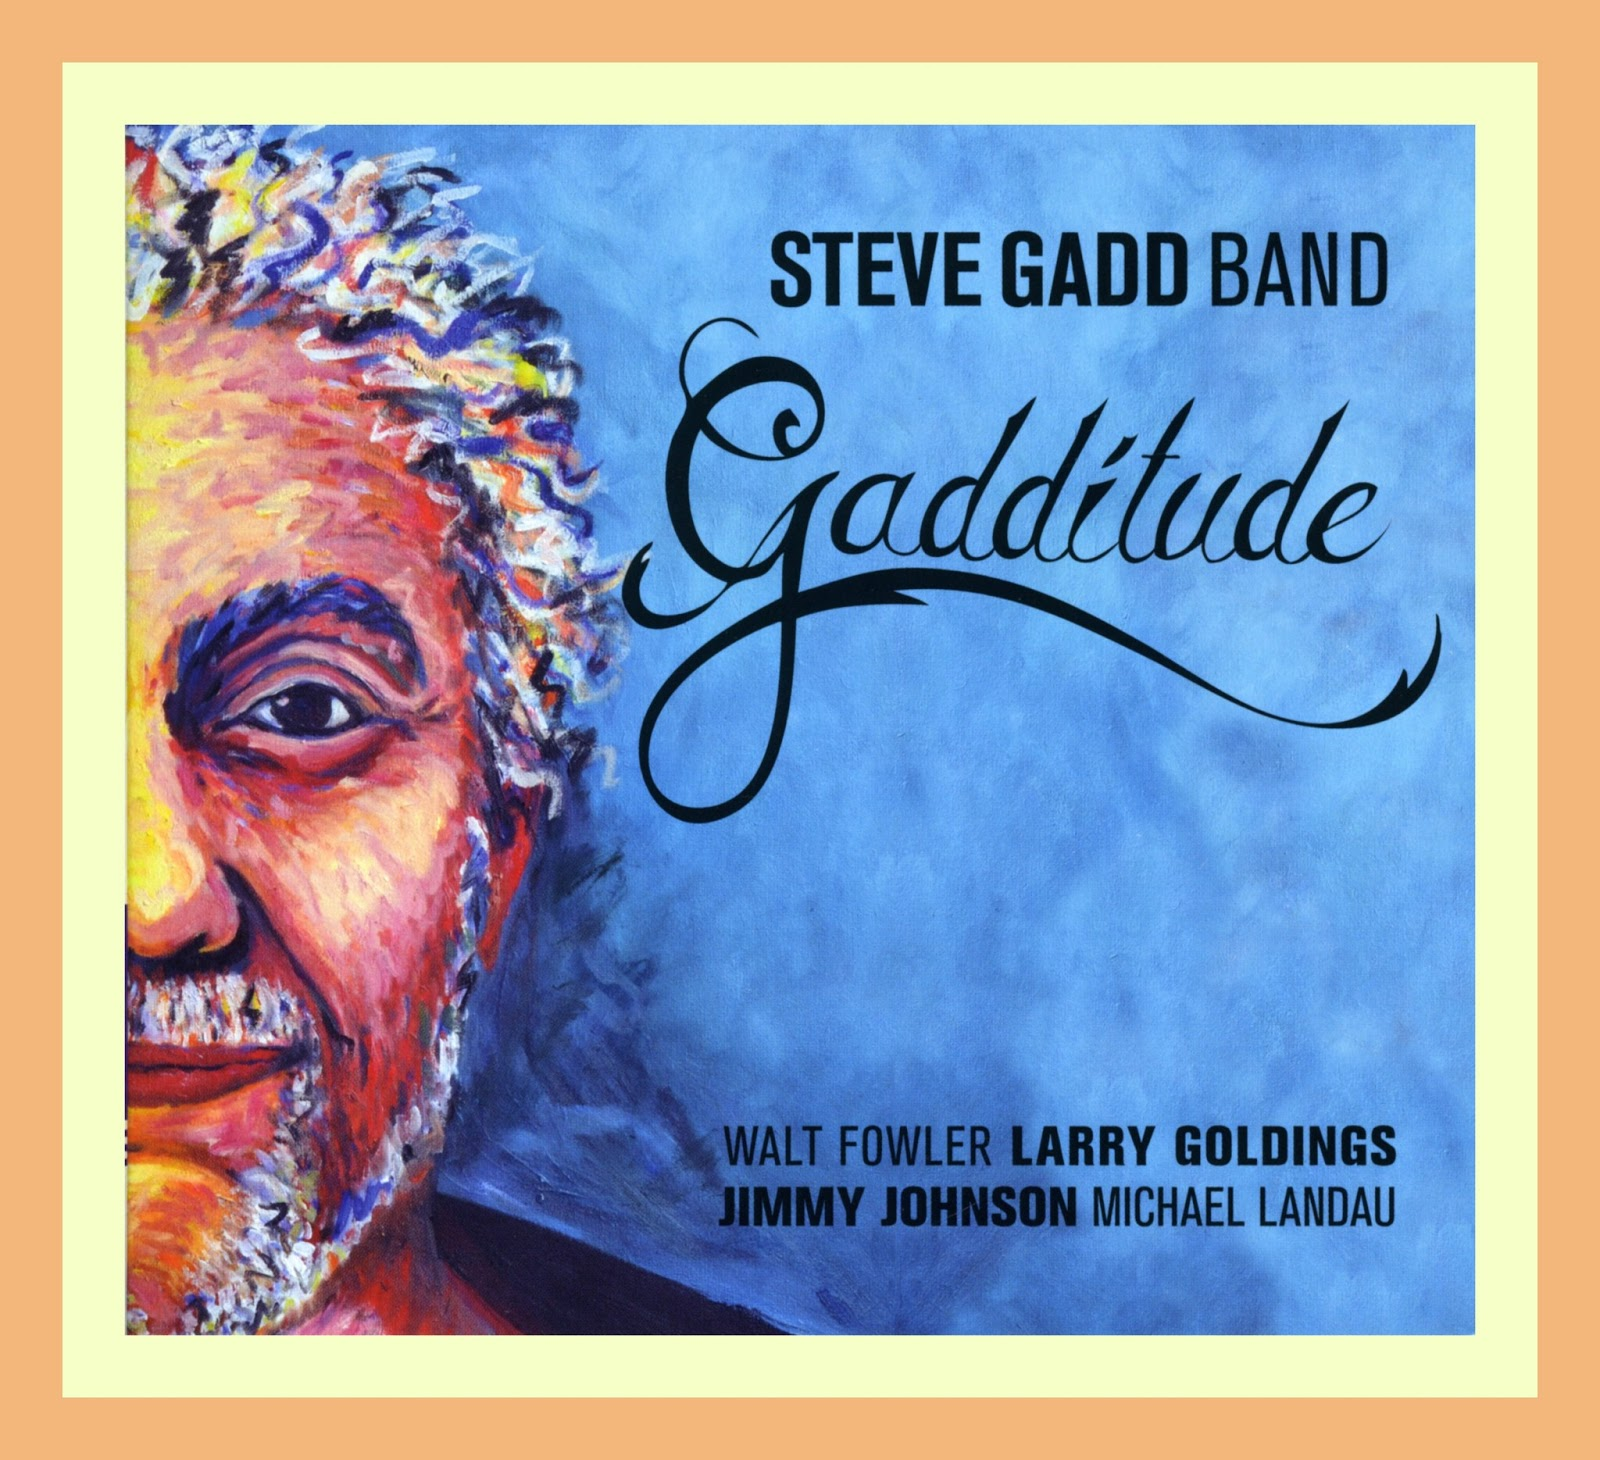 DownBeat Magazine on Steve Gadd's new album, Gadditude